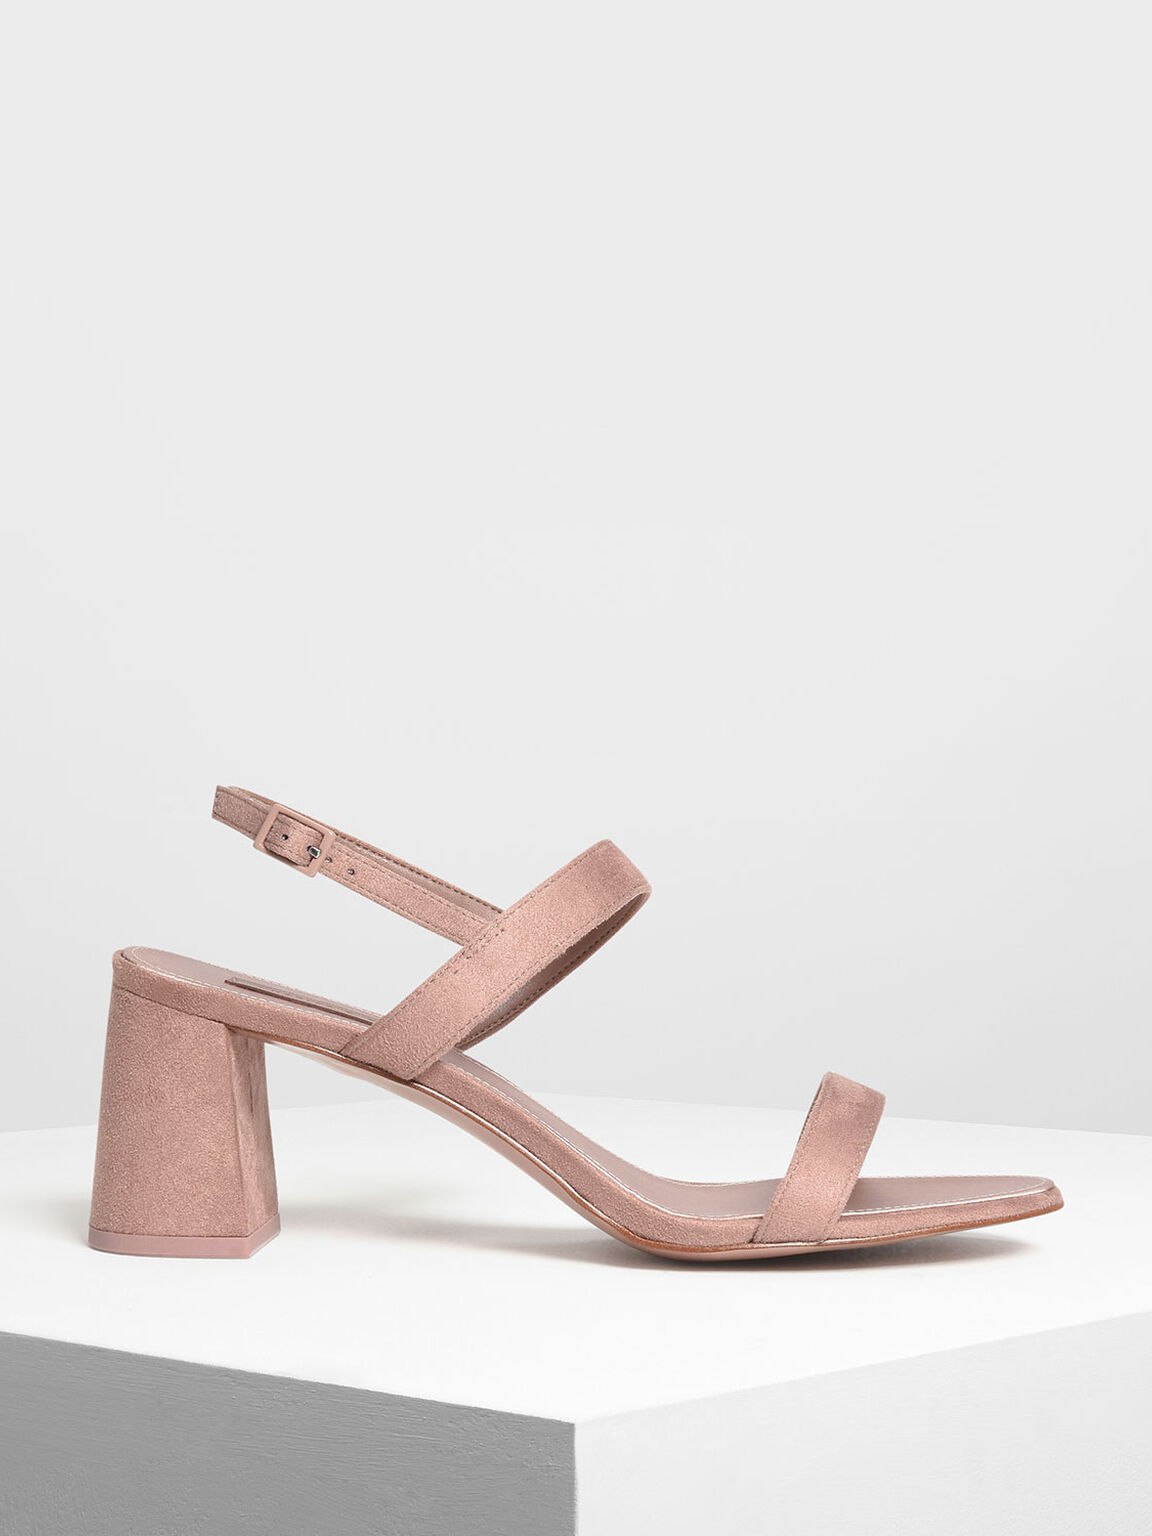 Flare Block Heel Sandals, Nude, hi-res